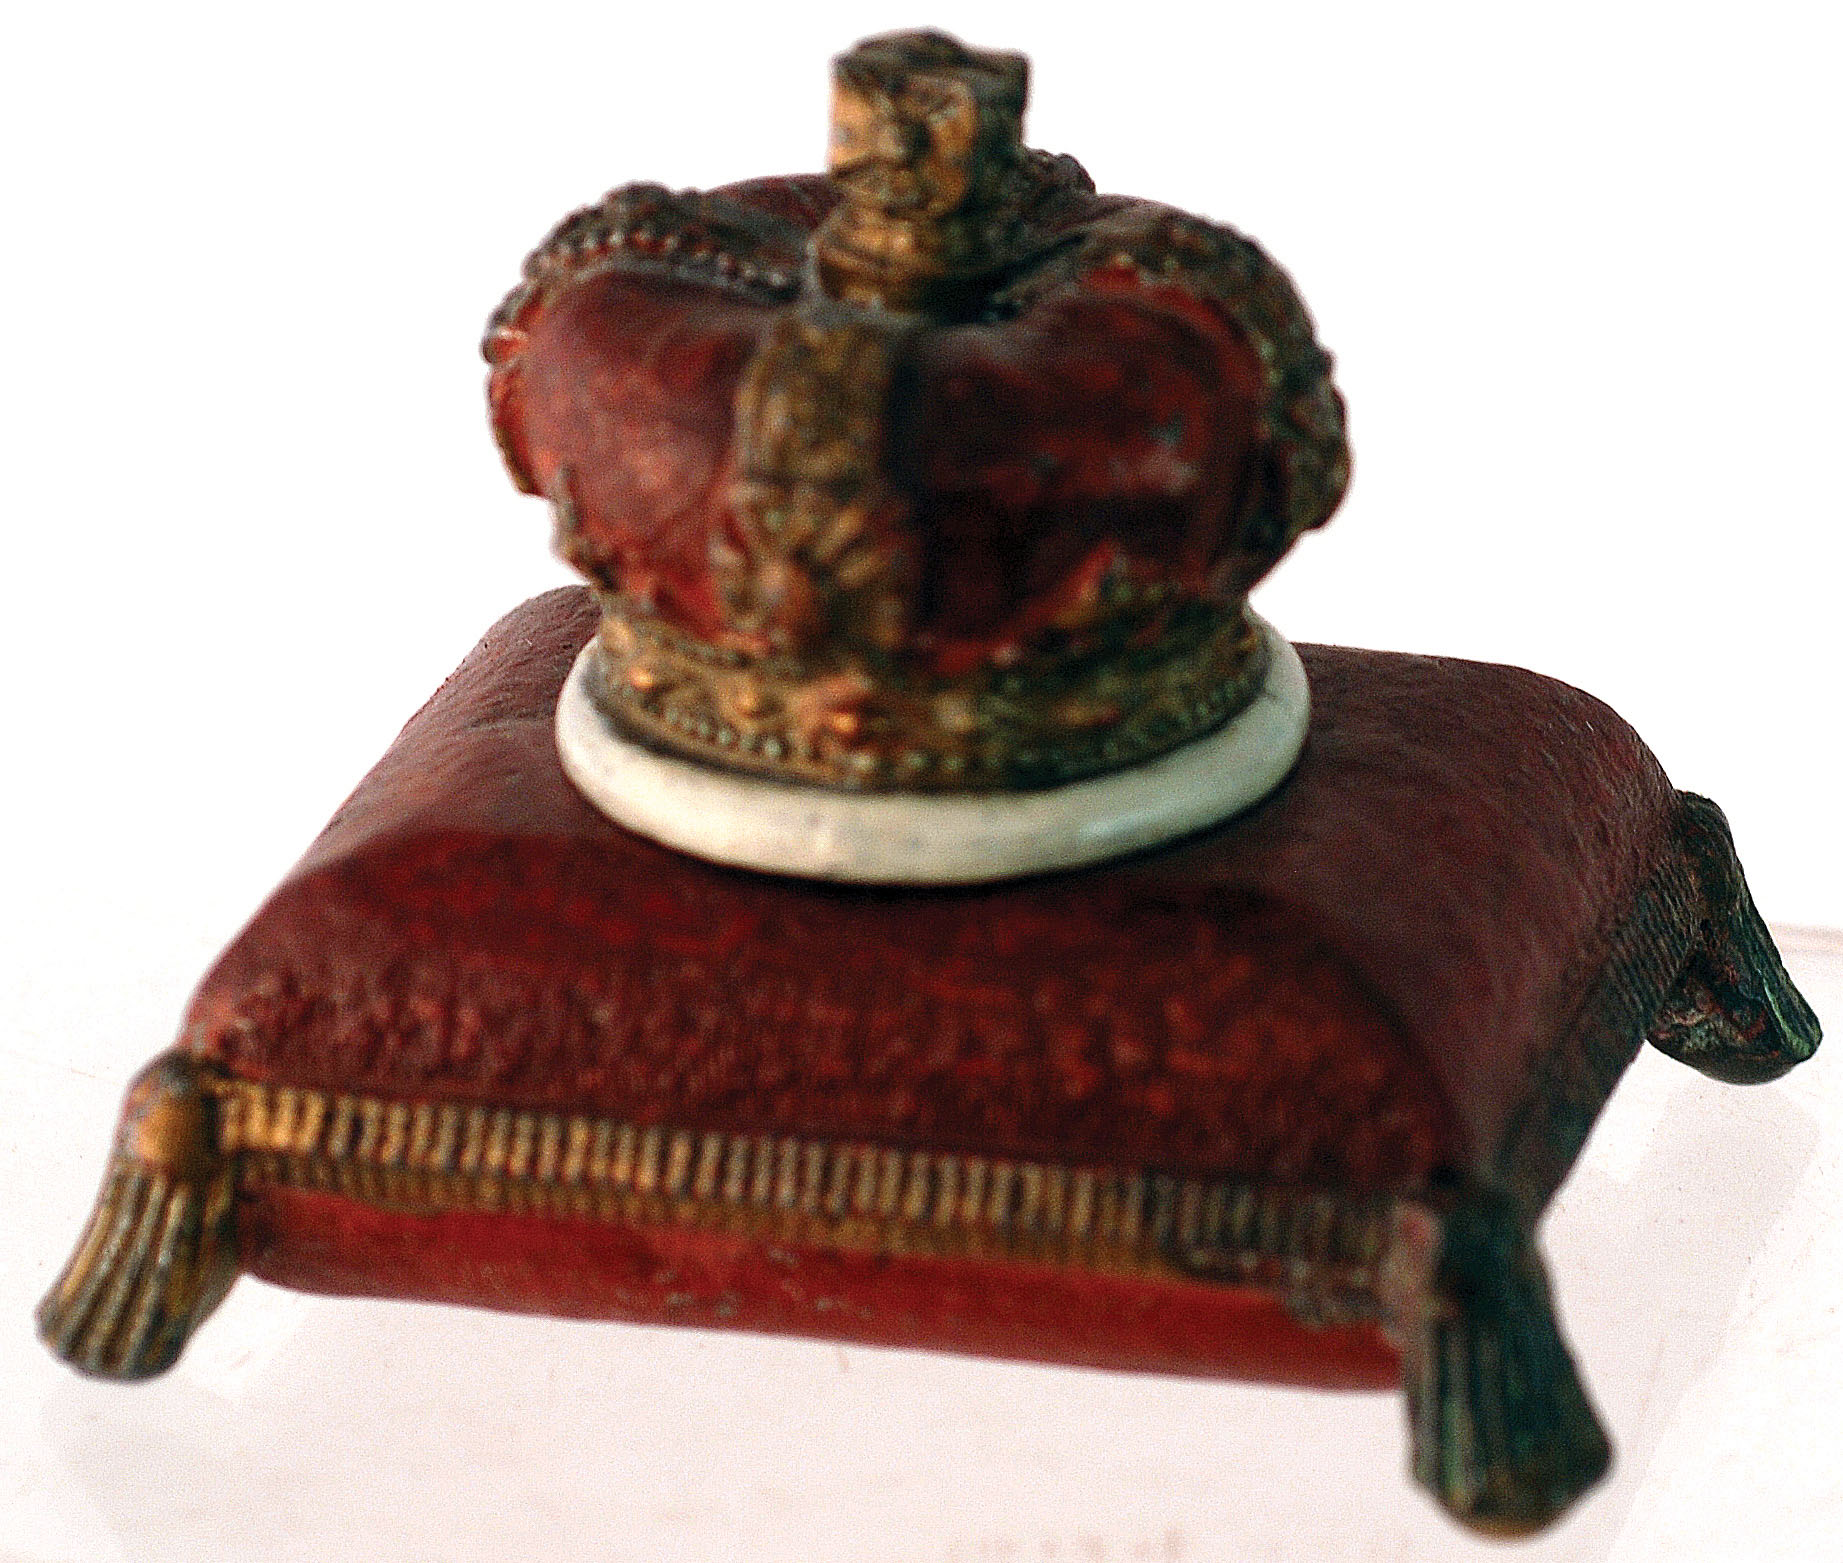 Lot 35 - CROWN ON CUSHION INKWELL. 2.75ins tall, metal inkwell formed as a crown on cushion. Red & gold